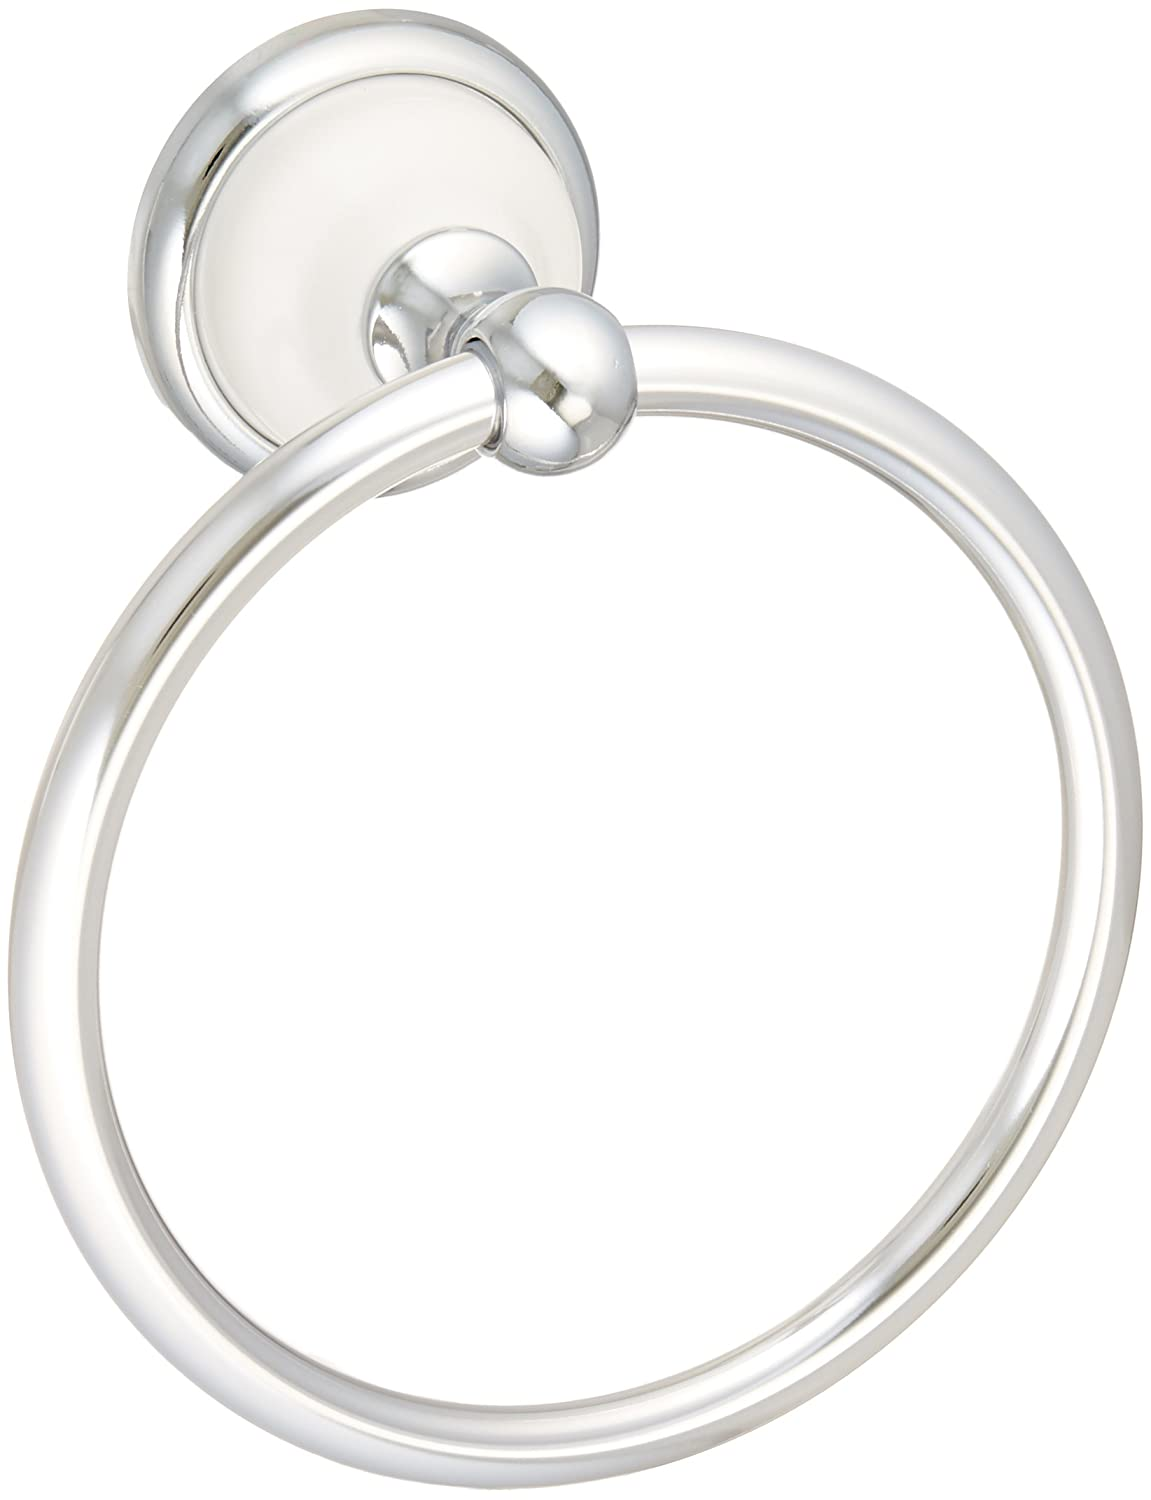 good Franklin Brass  126882 Bellini Towel Ring, Polished Chrome & White